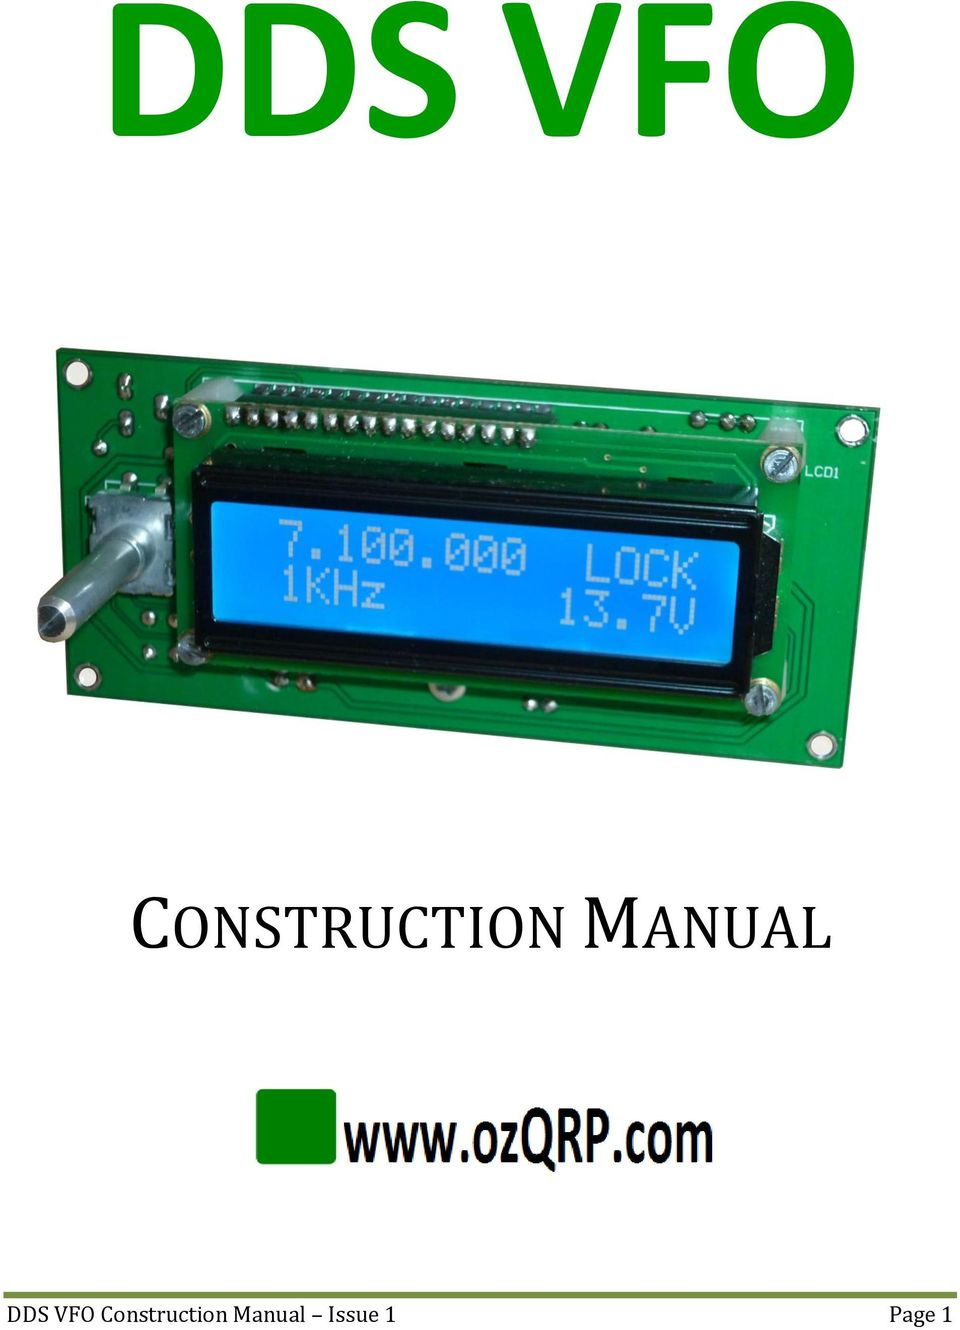 DDS VFO CONSTRUCTION MANUAL  DDS VFO Construction Manual Issue 1